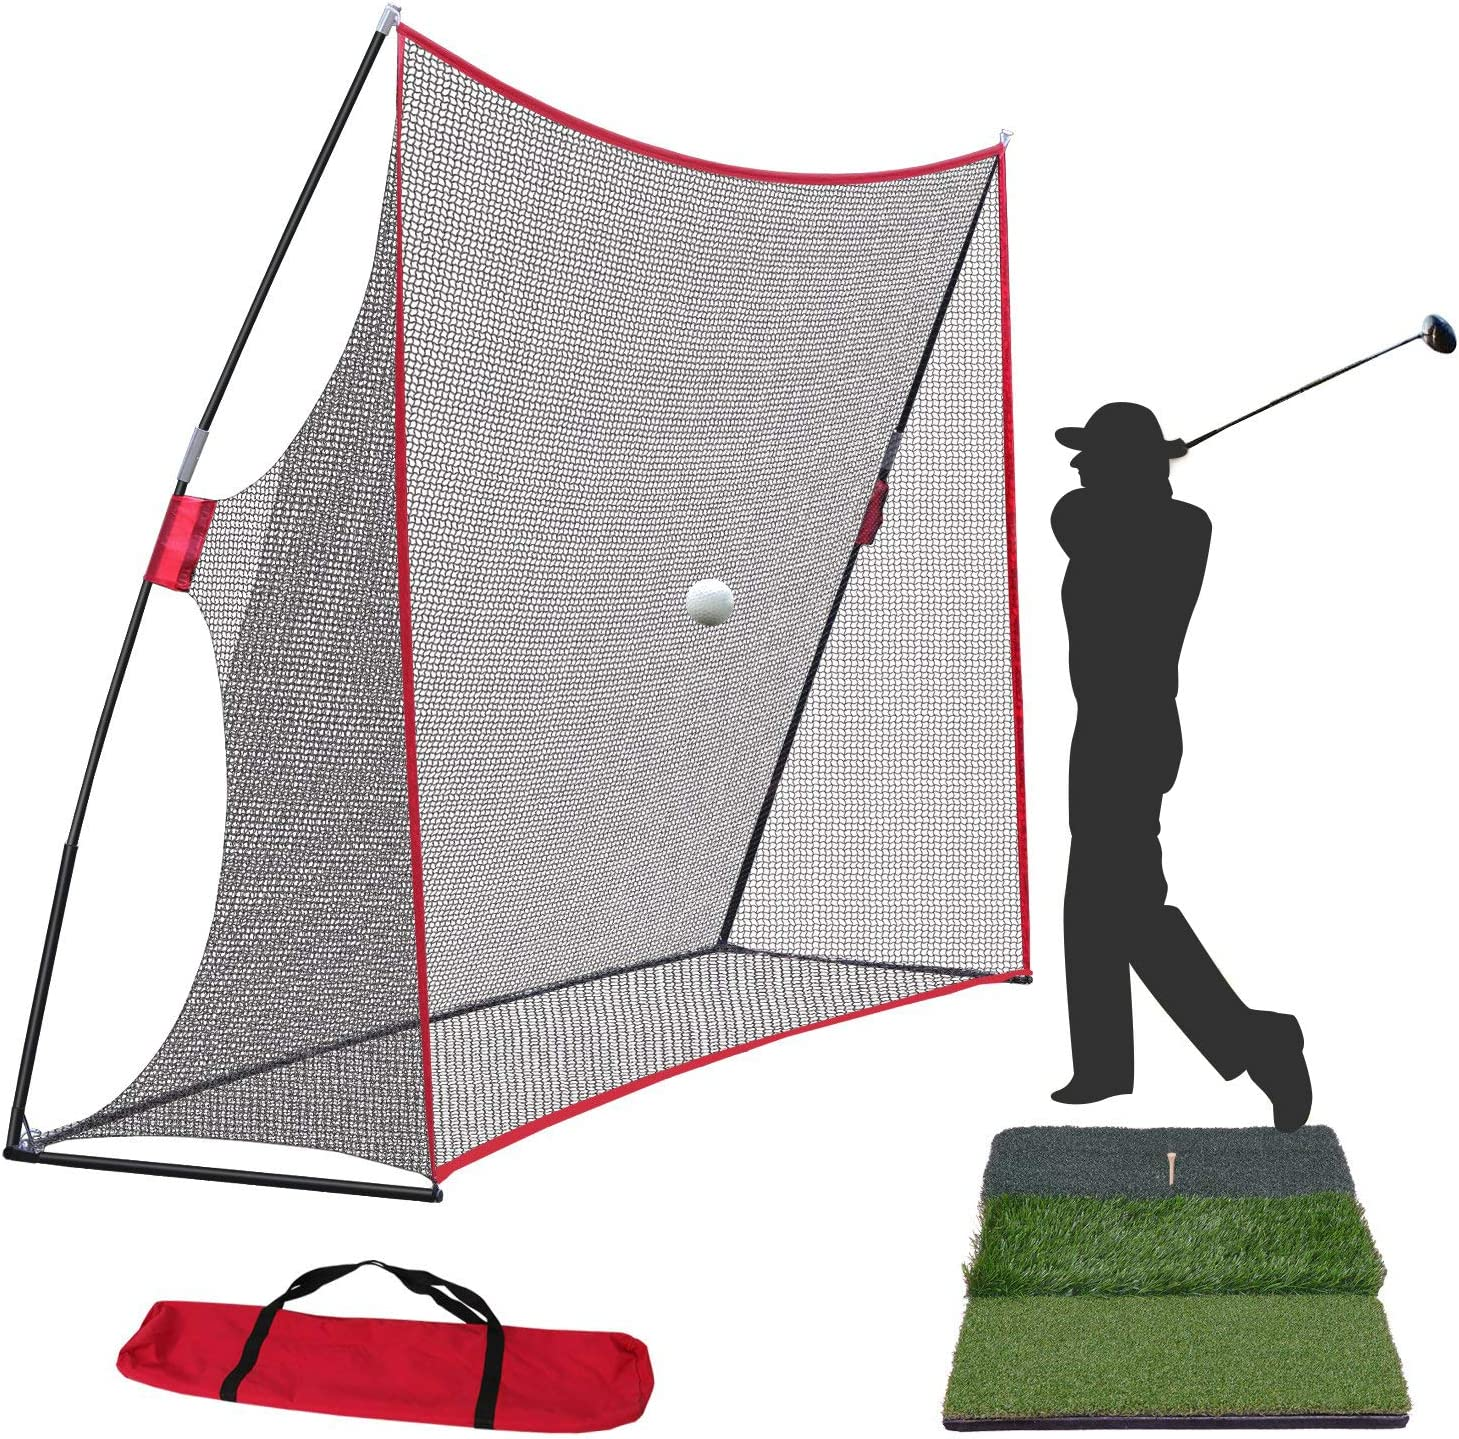 Smartxchoices Golf Net and Mat Bundle – 10x7ft Golf Net with Frame Tri-Turf Hitting Mat with Carry Bag for Golf Practice Pitching Training Driving Backyard Indoor Outdoor